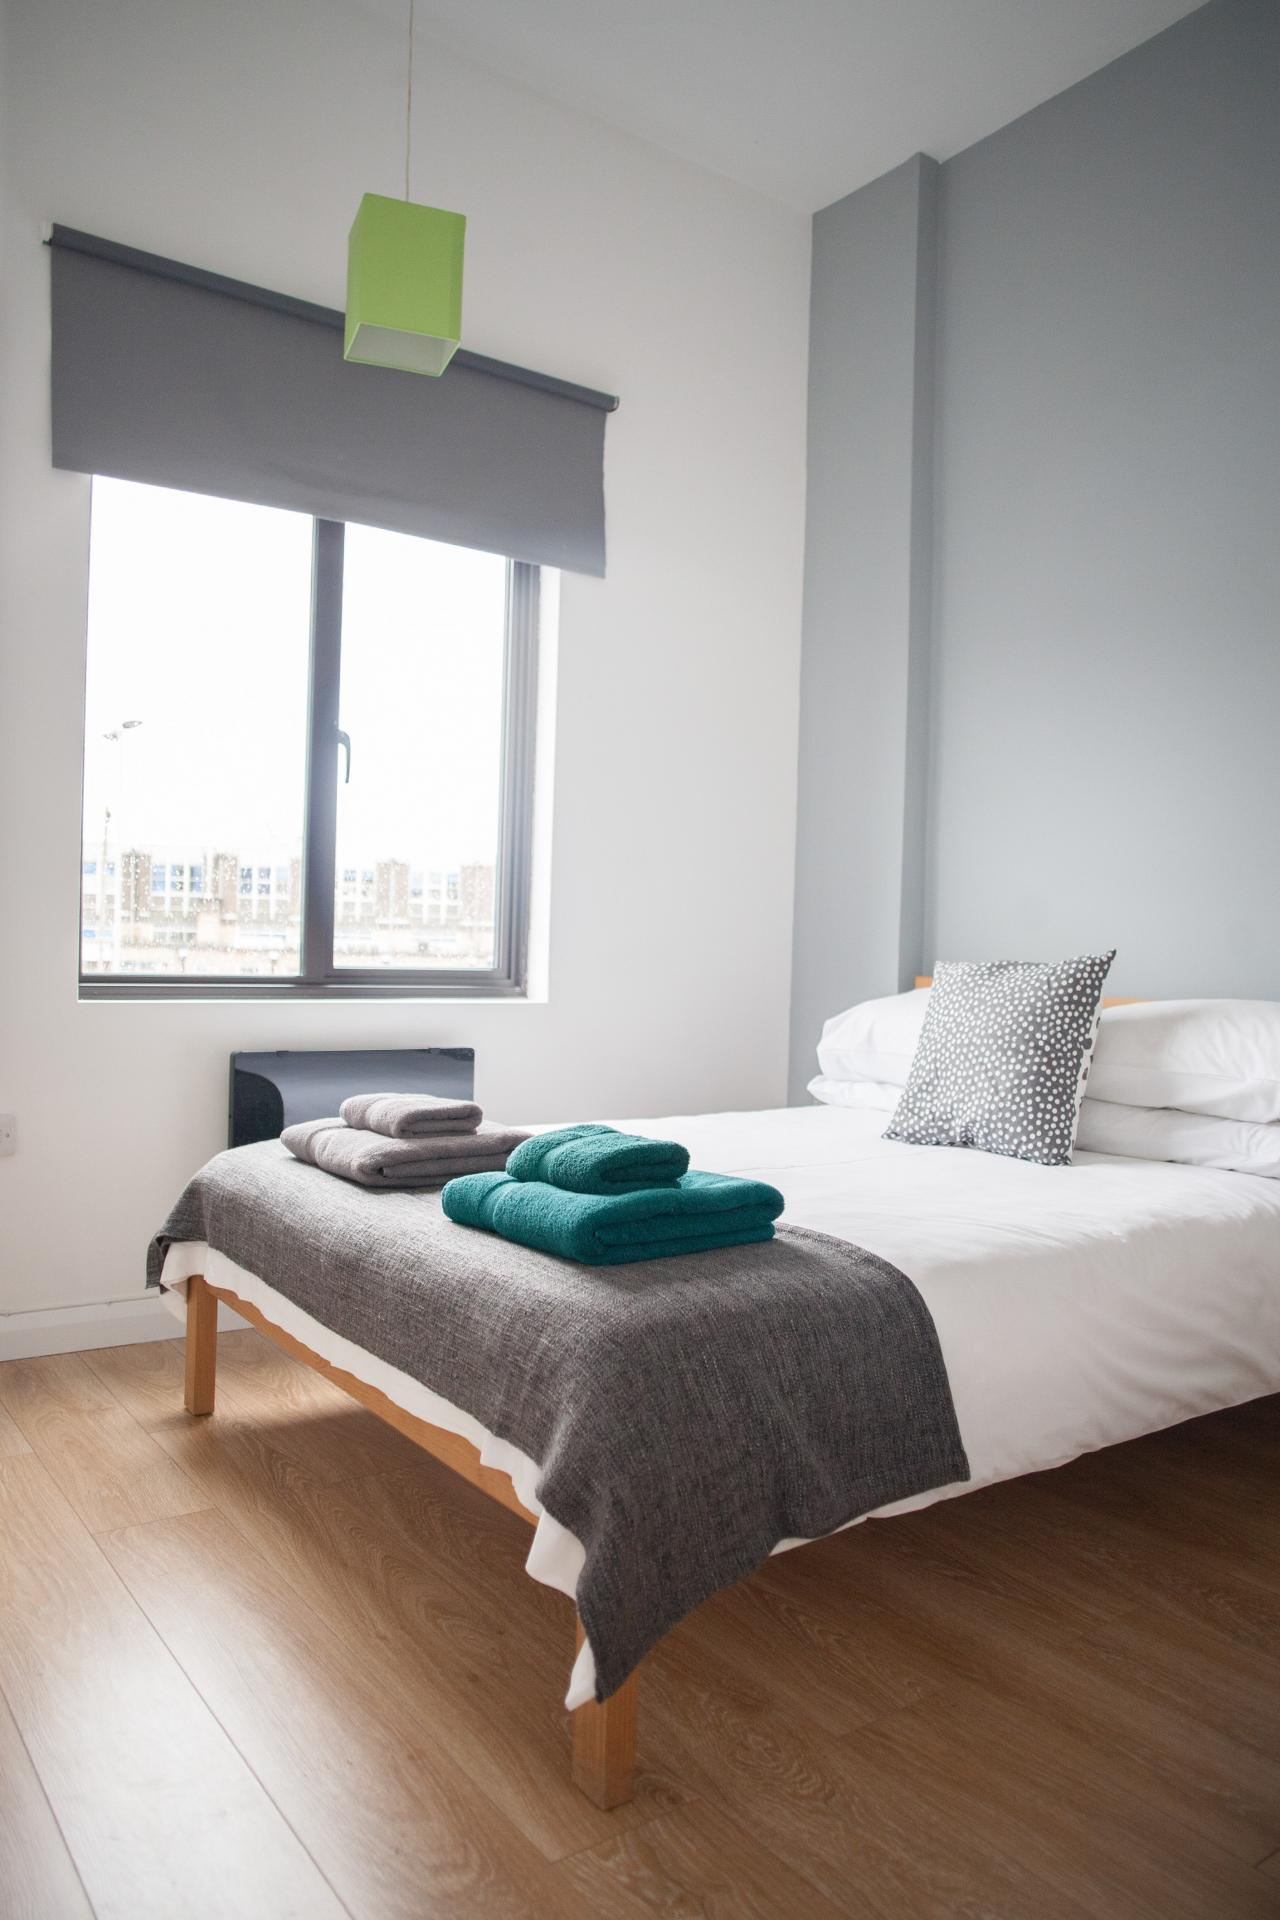 Bedroom at Quire Court Apartments, Centre, Gloucester - Citybase Apartments